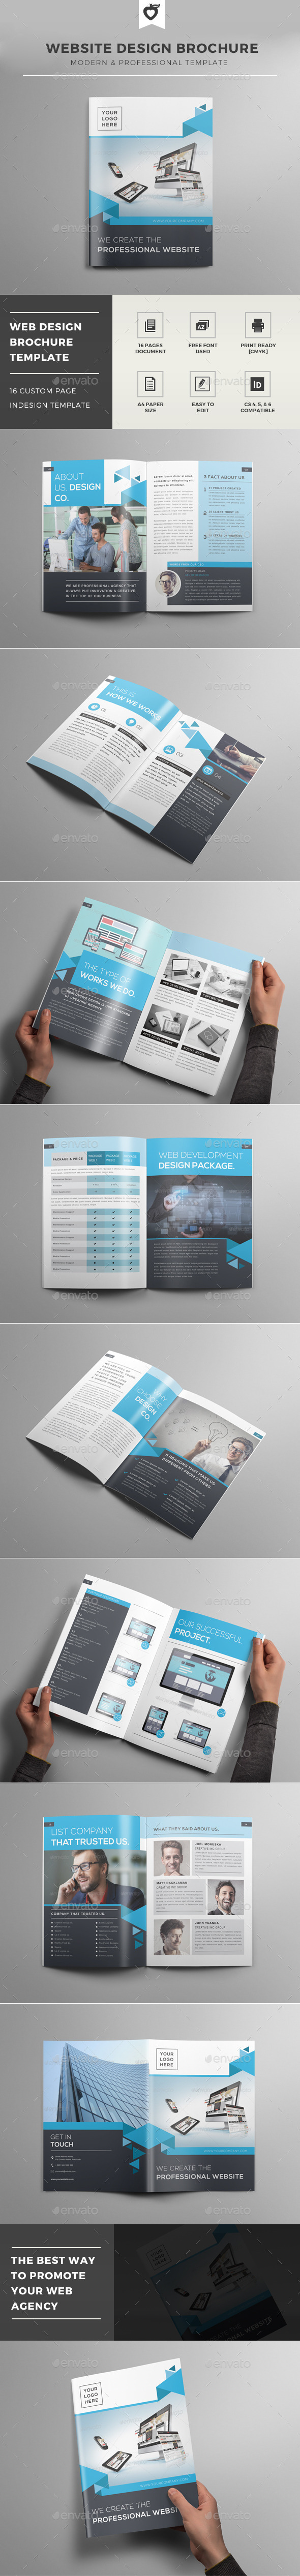 Website Design Brochure Template - Informational Brochures